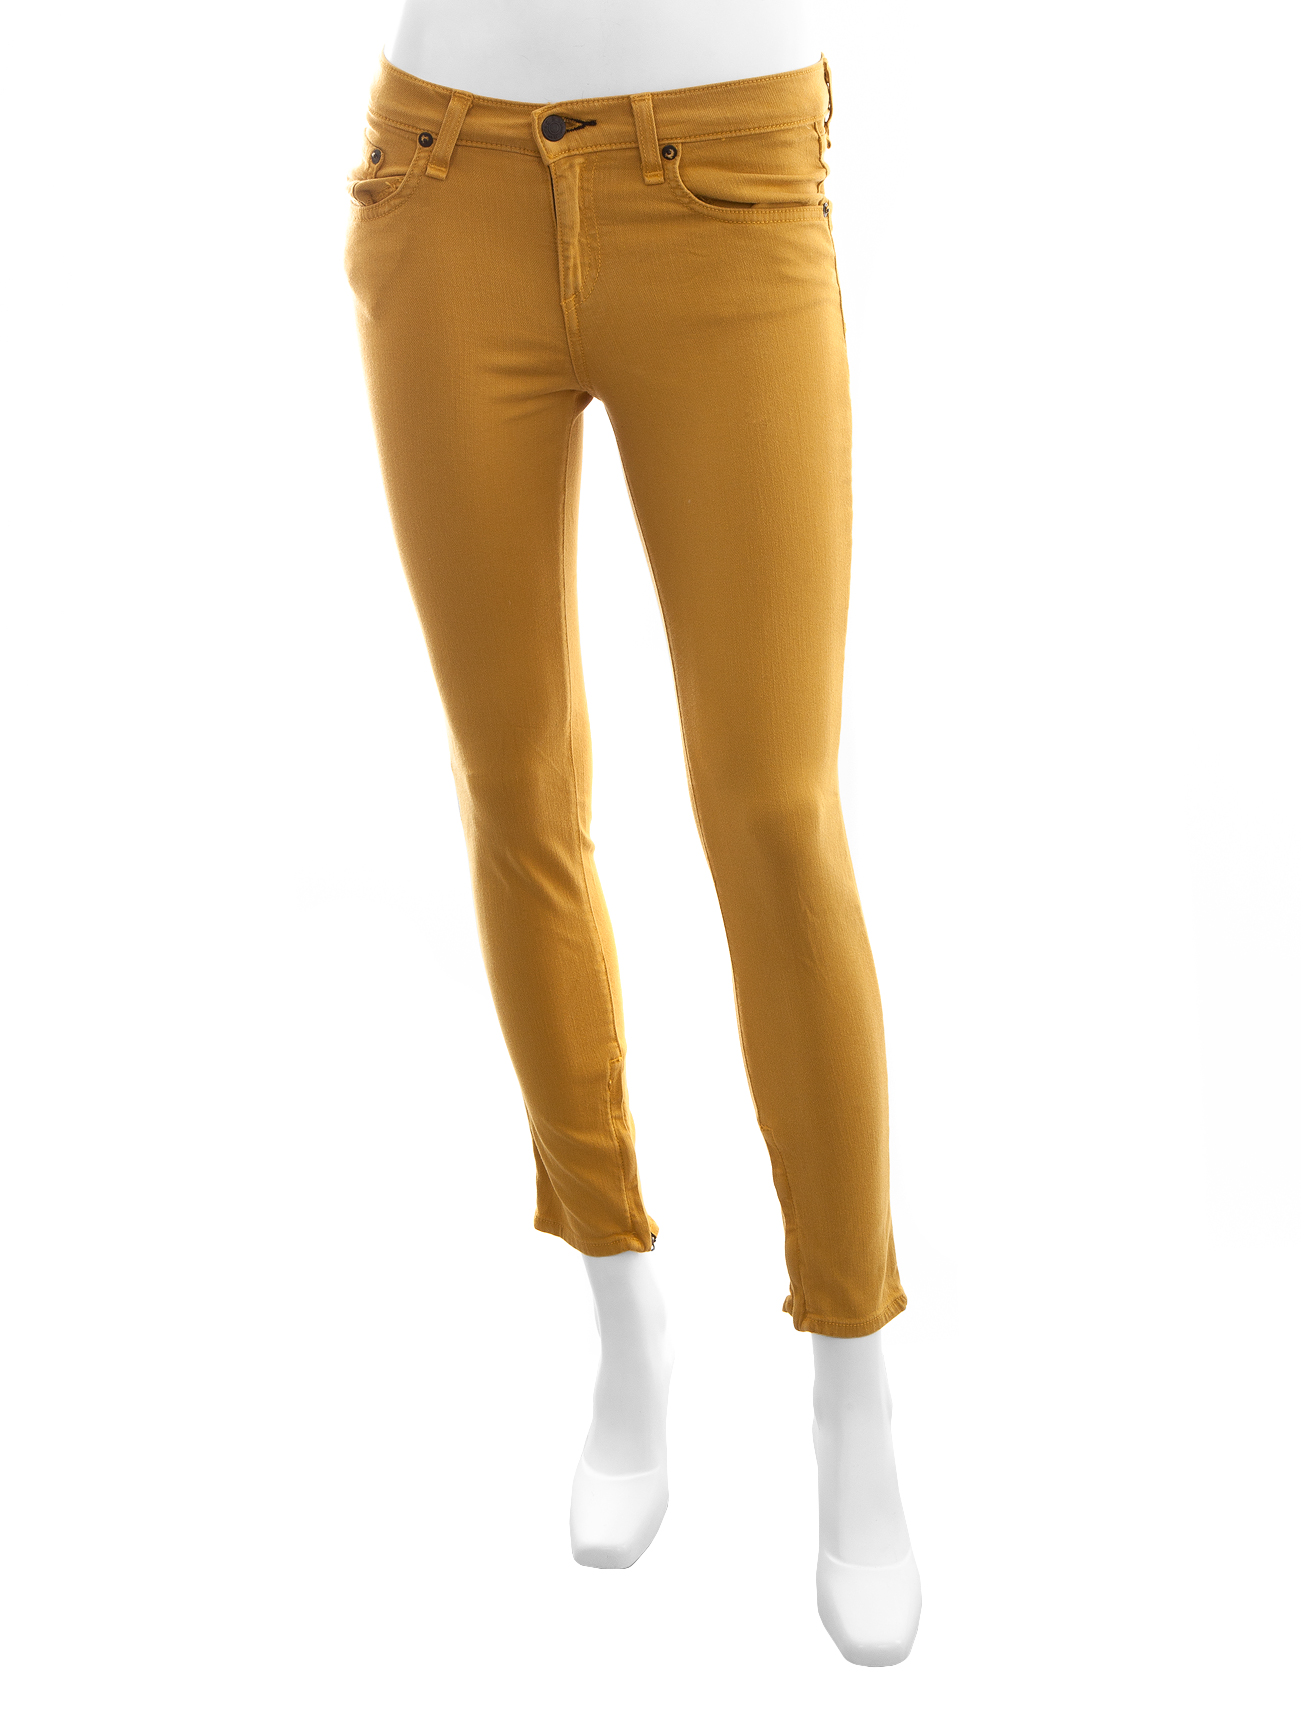 Simple Home Clothing Women Clothing Trousers Being Human Trousers